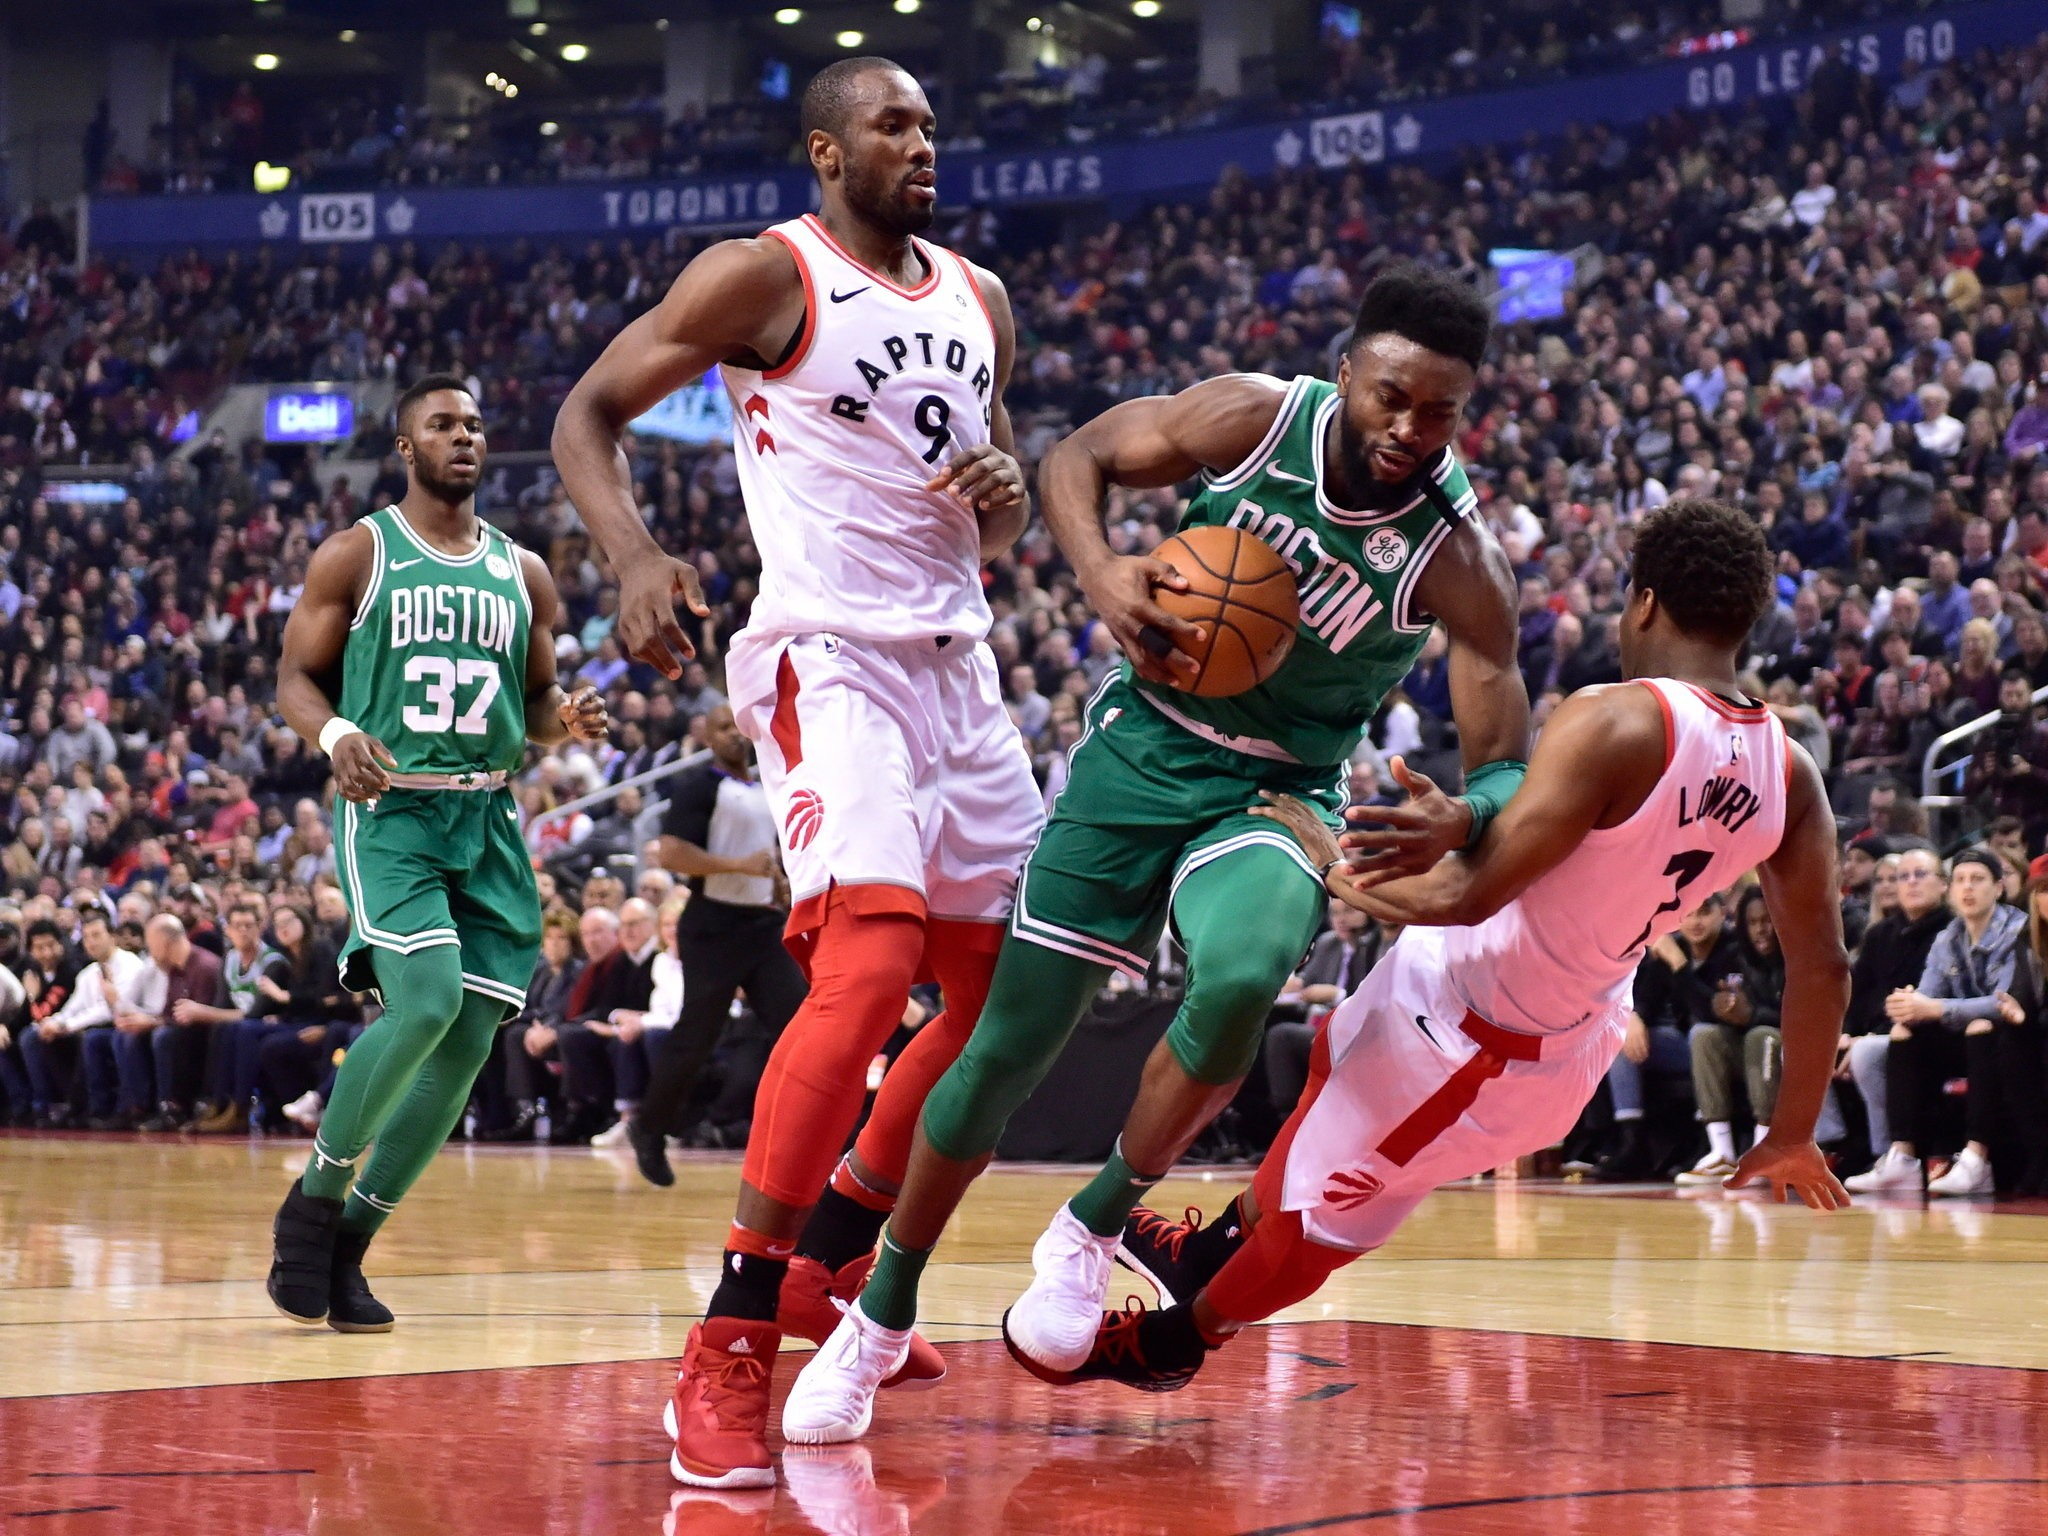 Boston Celtics Go Ice Cold In Loss To Toronto Raptors Likely Clinch No 2 Seed Masslive Com